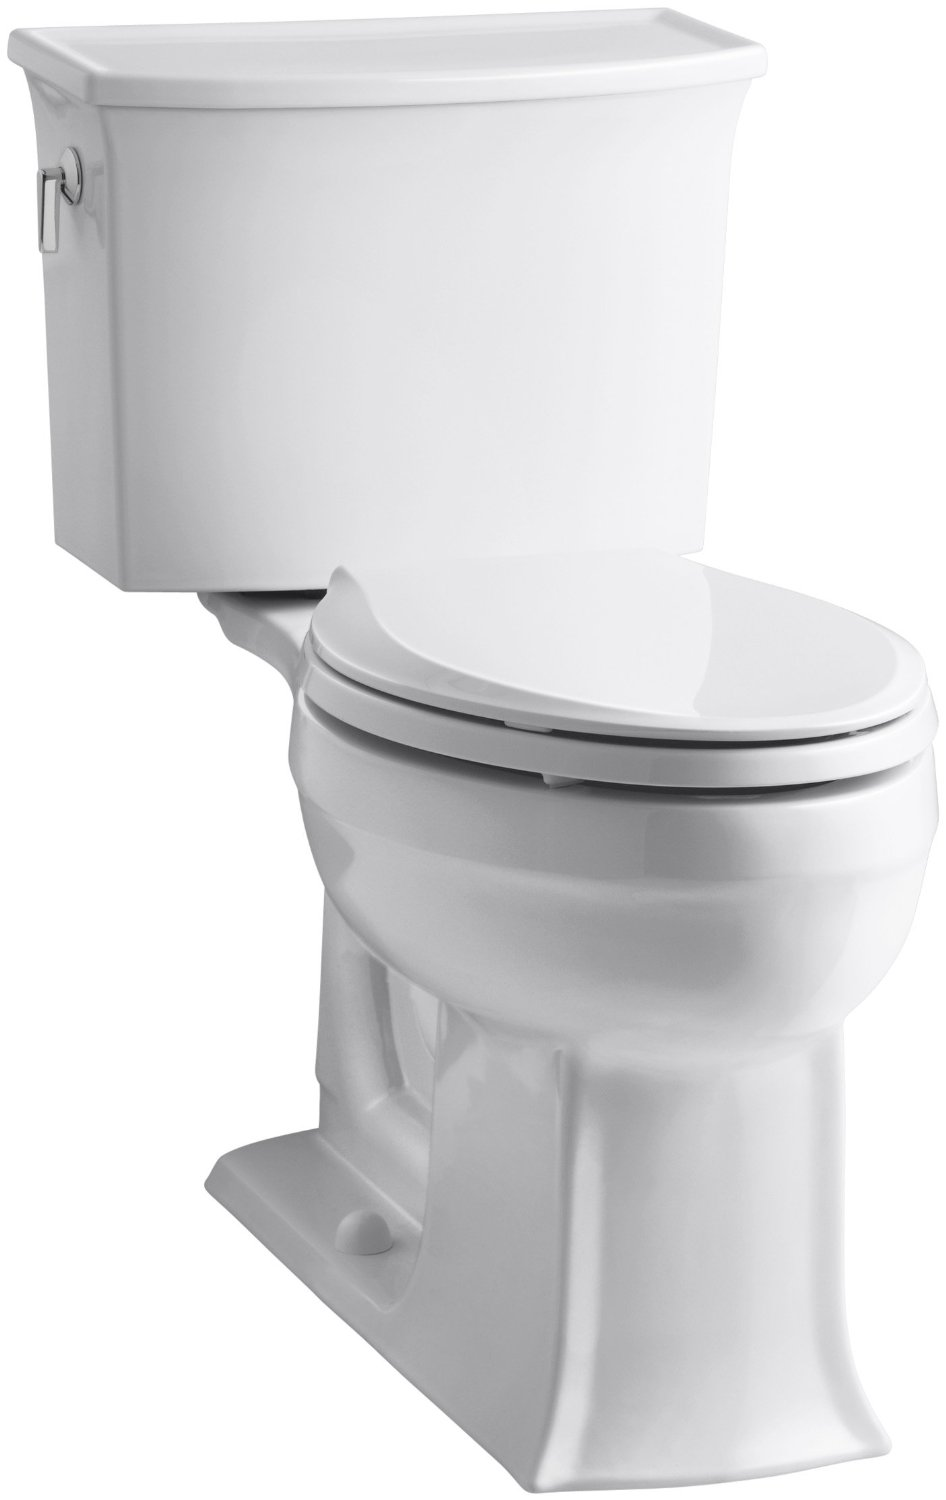 Kohler Archer Toilet Review